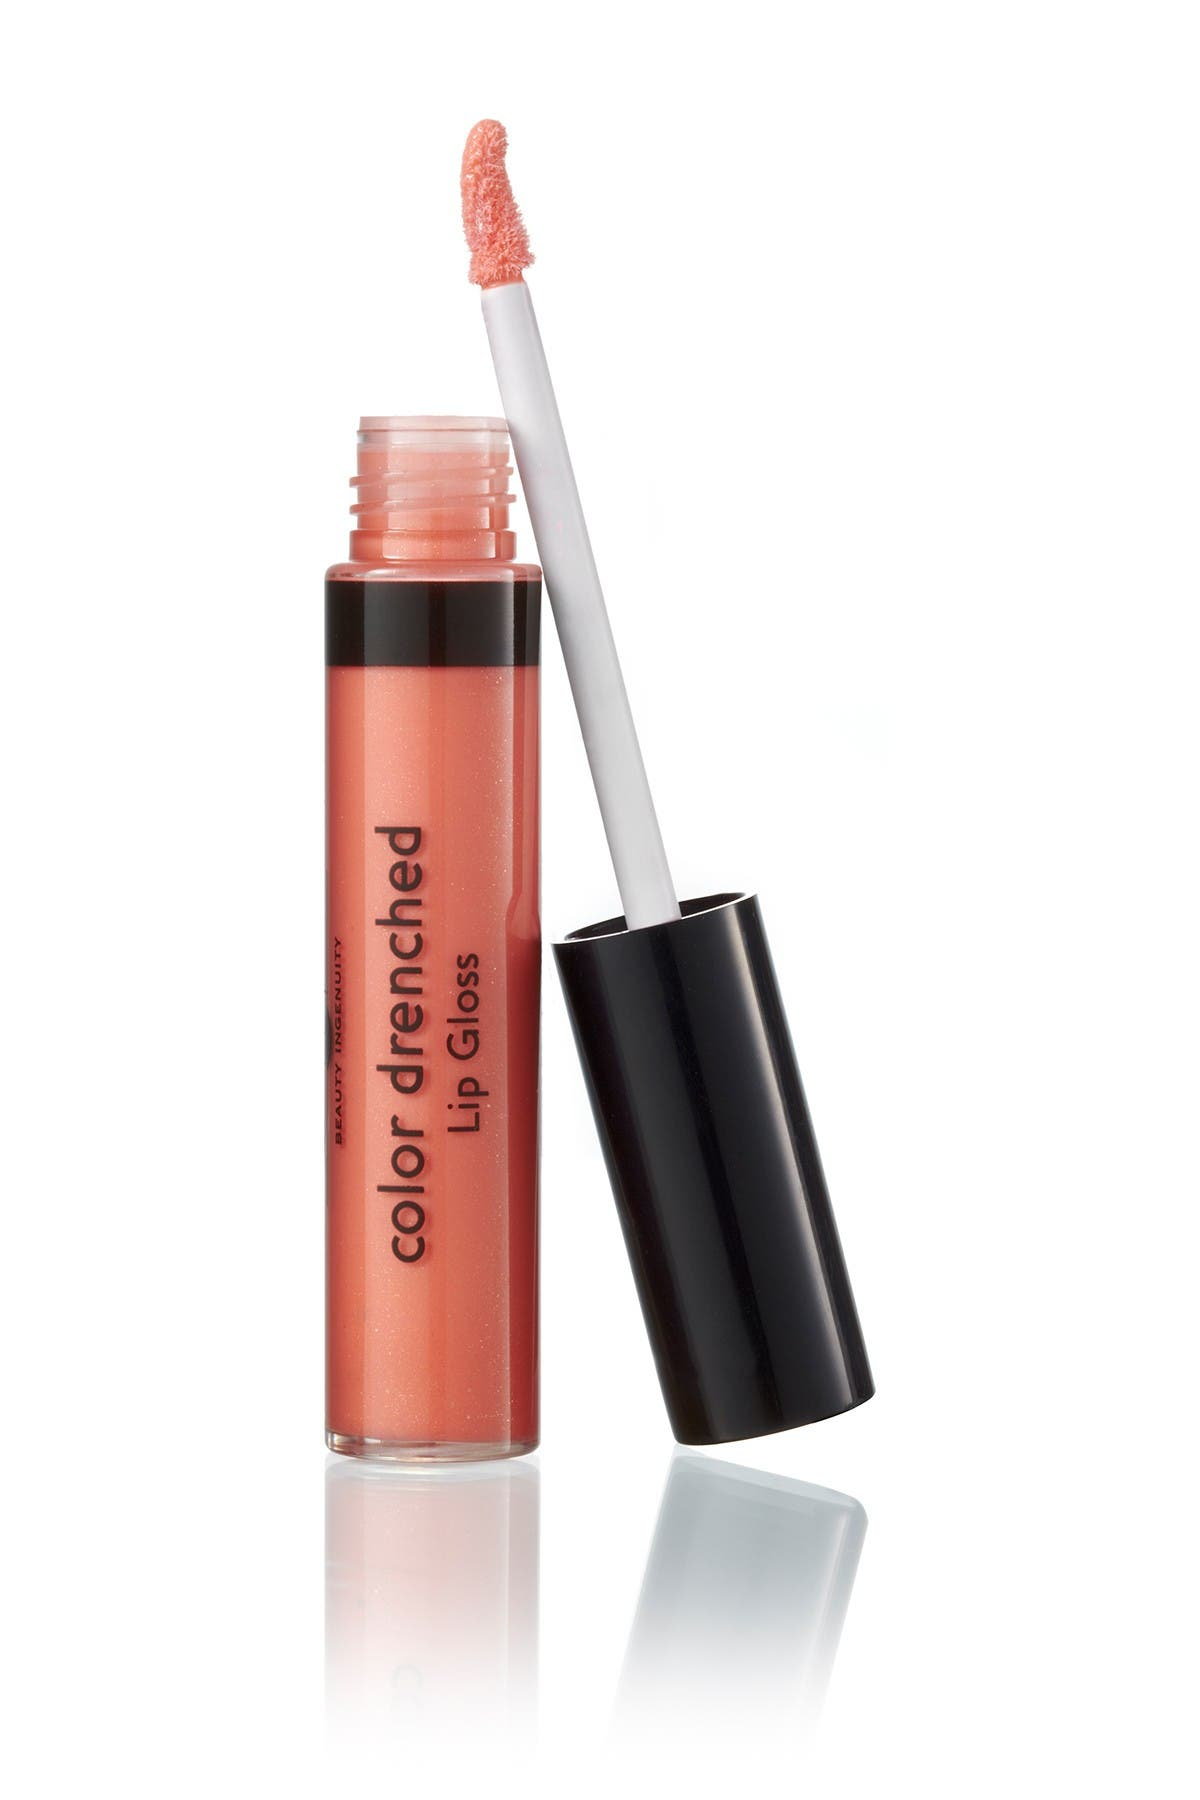 Image of Laura Geller New York Color Drenched Lip Gloss - Melon Infusion